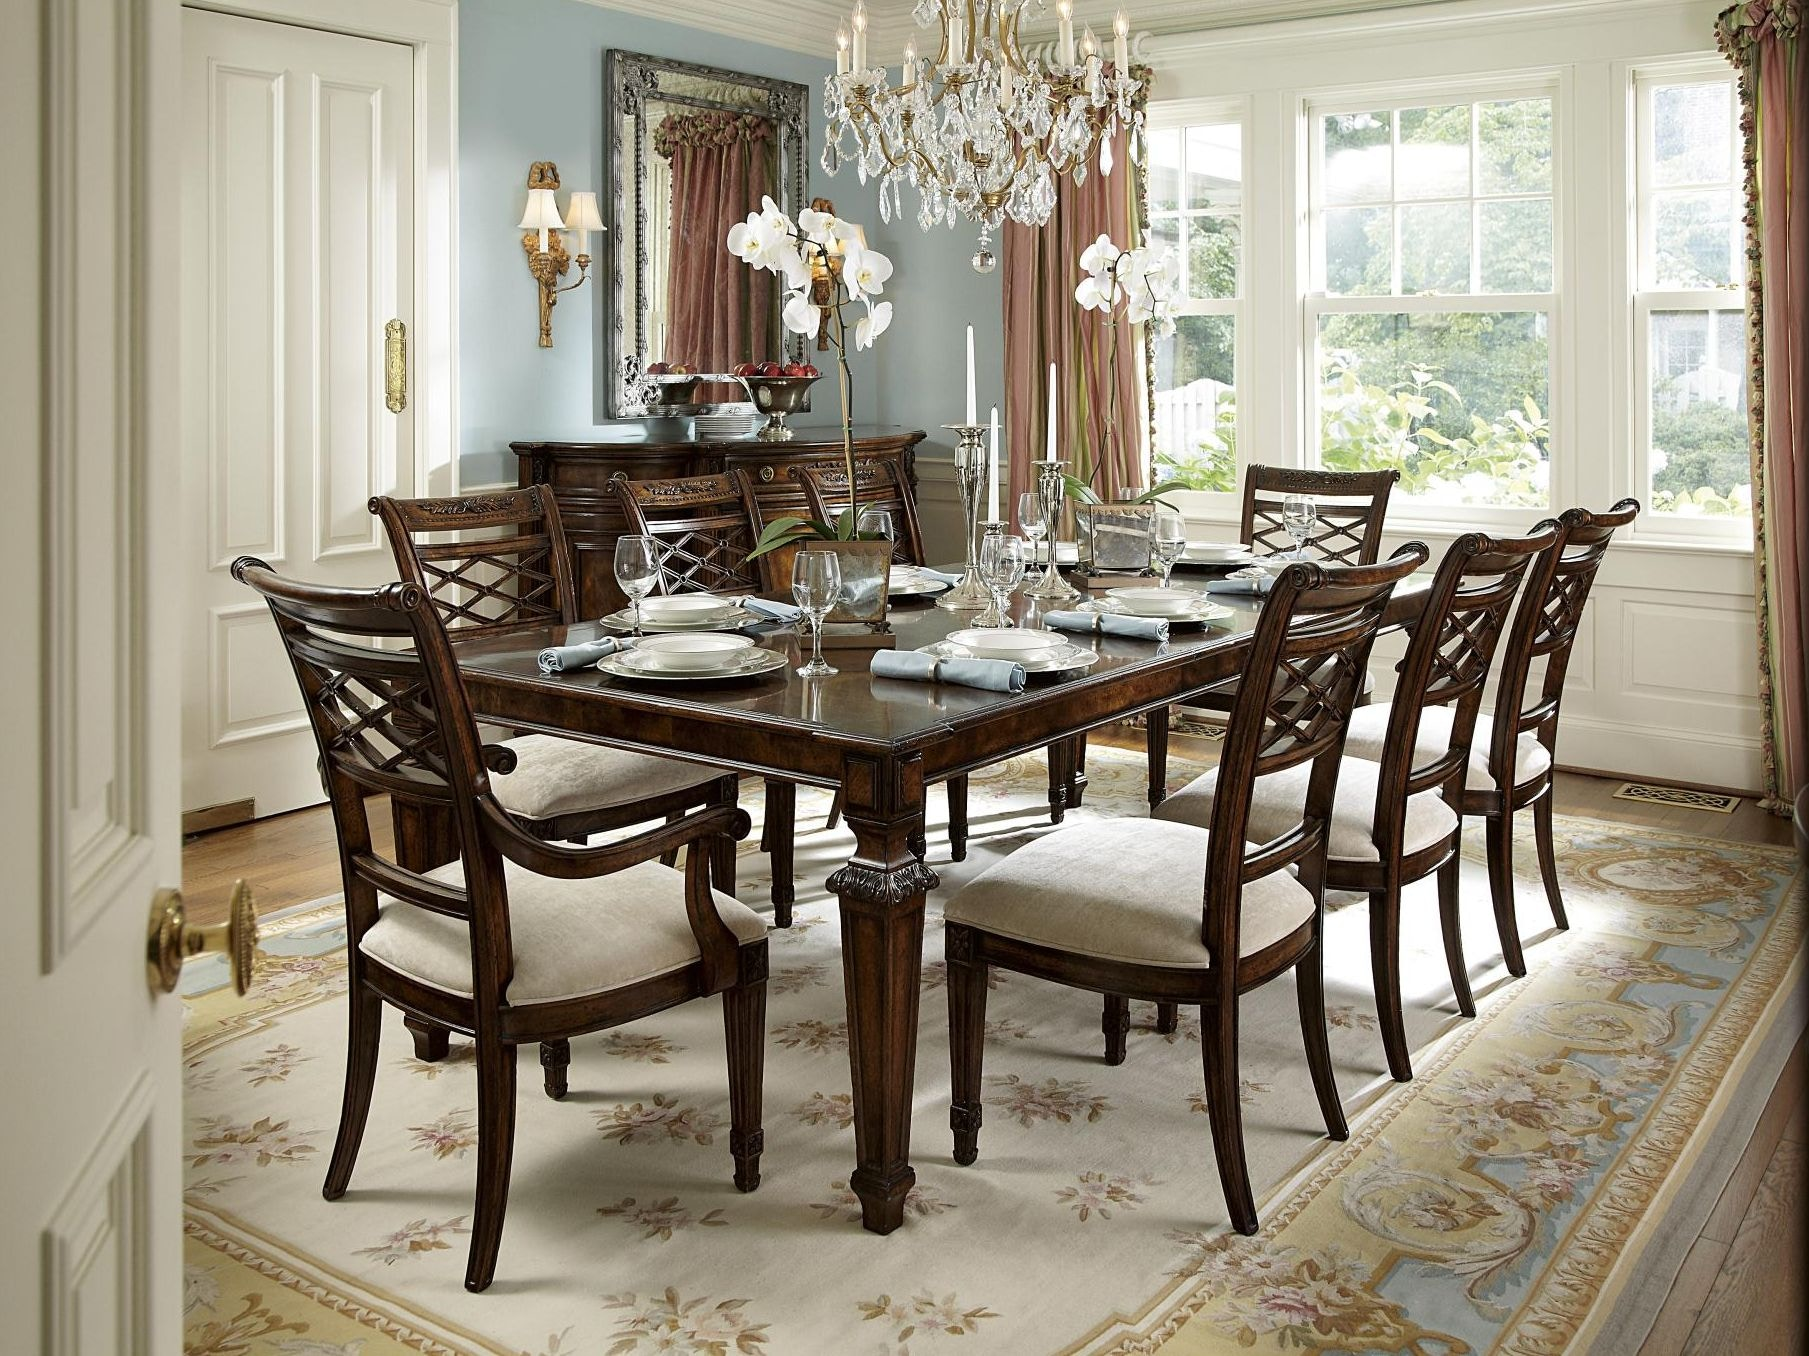 Fine furniture design dining room louis dining table 1340 for Md table design